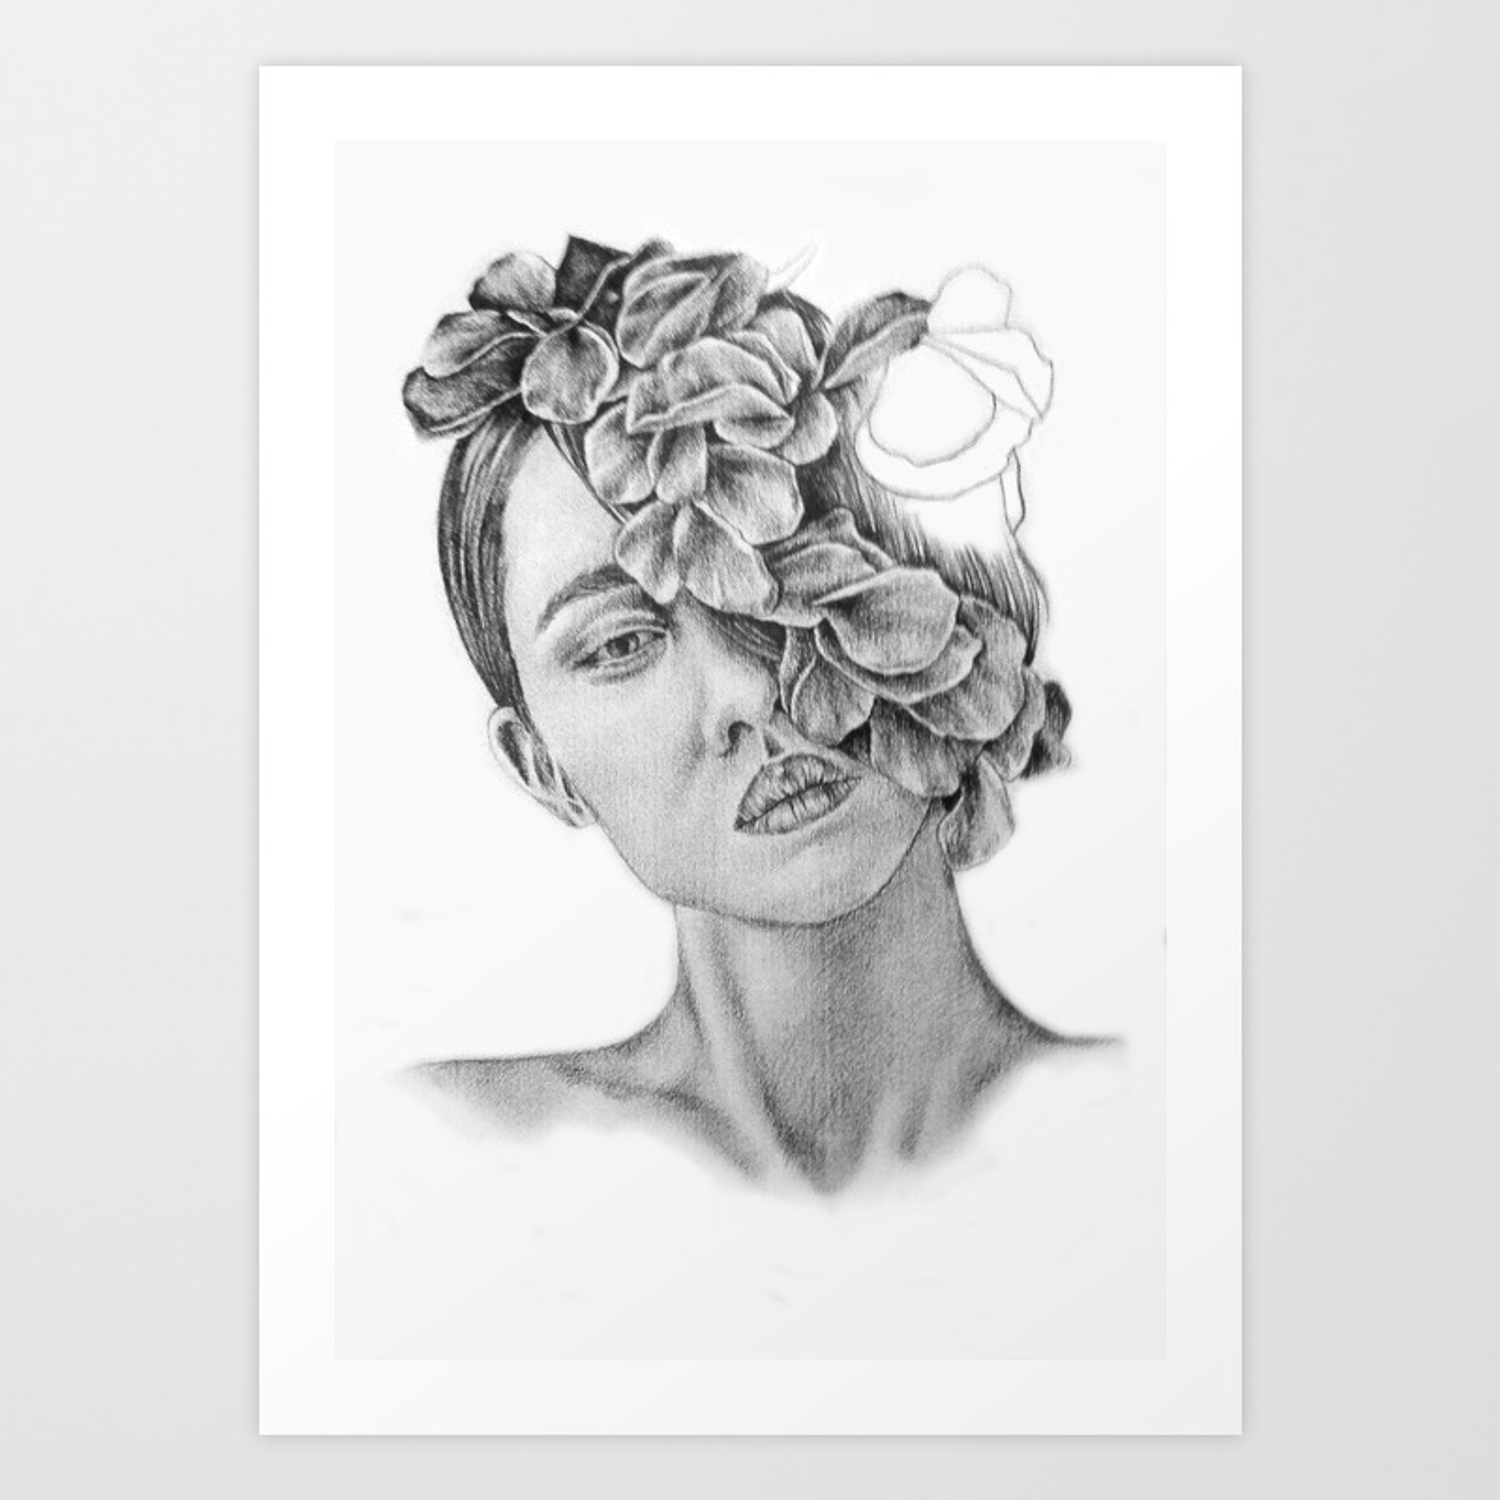 Art pencil drawing illustration portrait model flowers gift wall decor art print